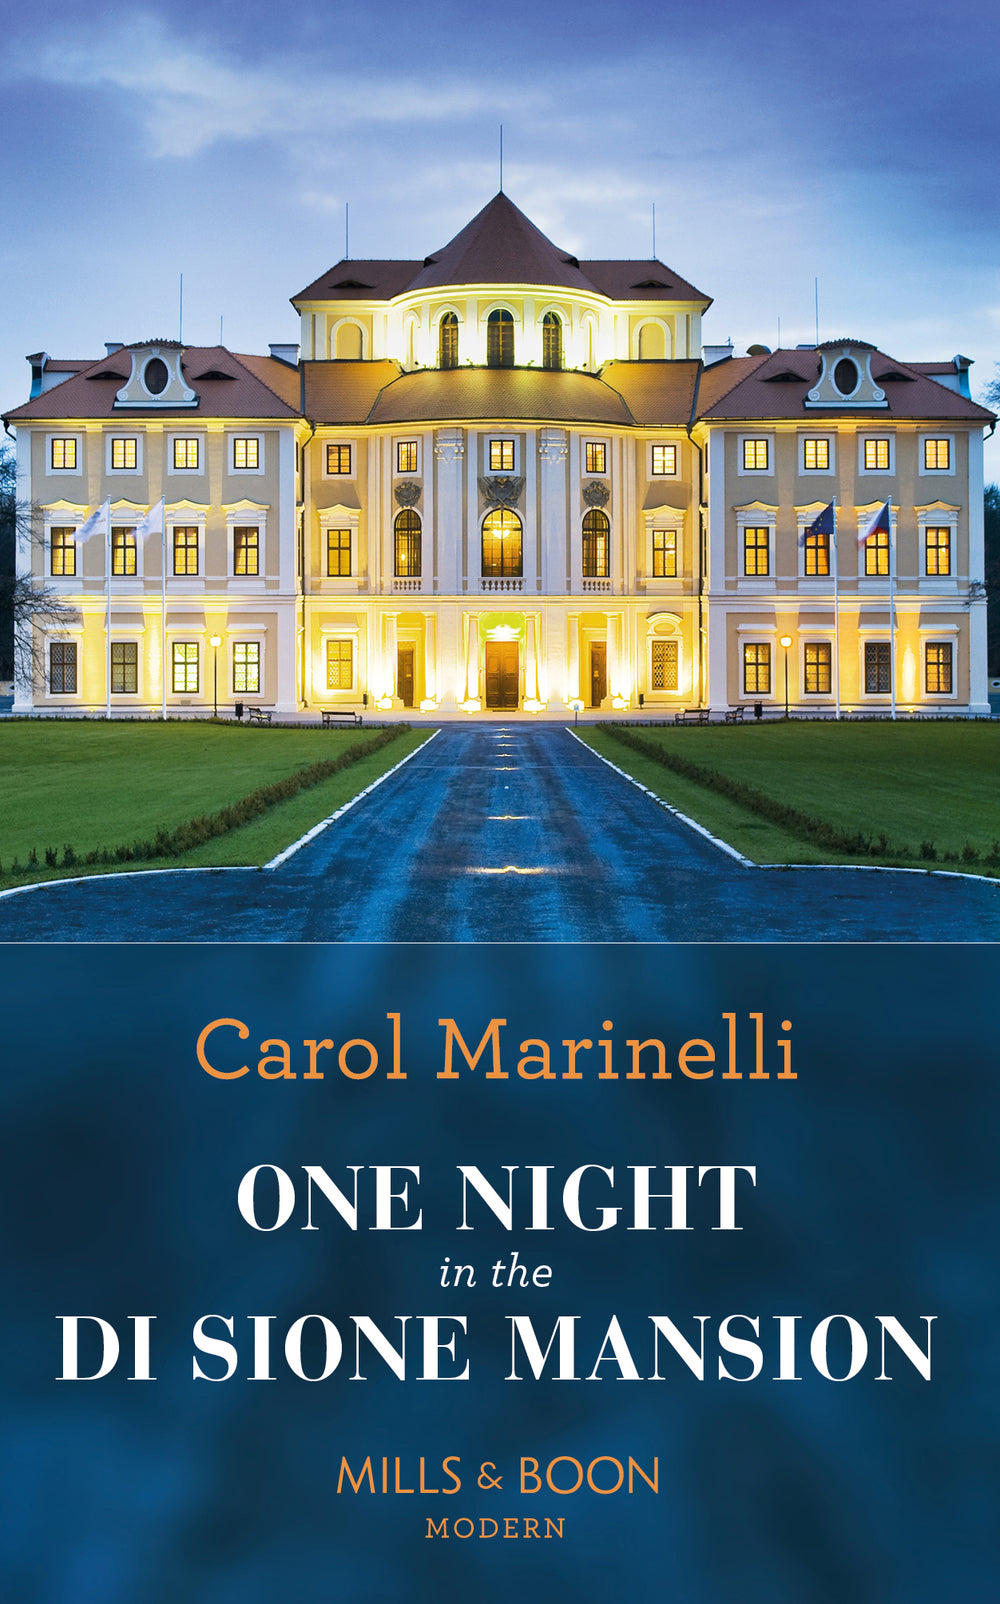 One Night in the Di Sione Mansion - Chapter 6